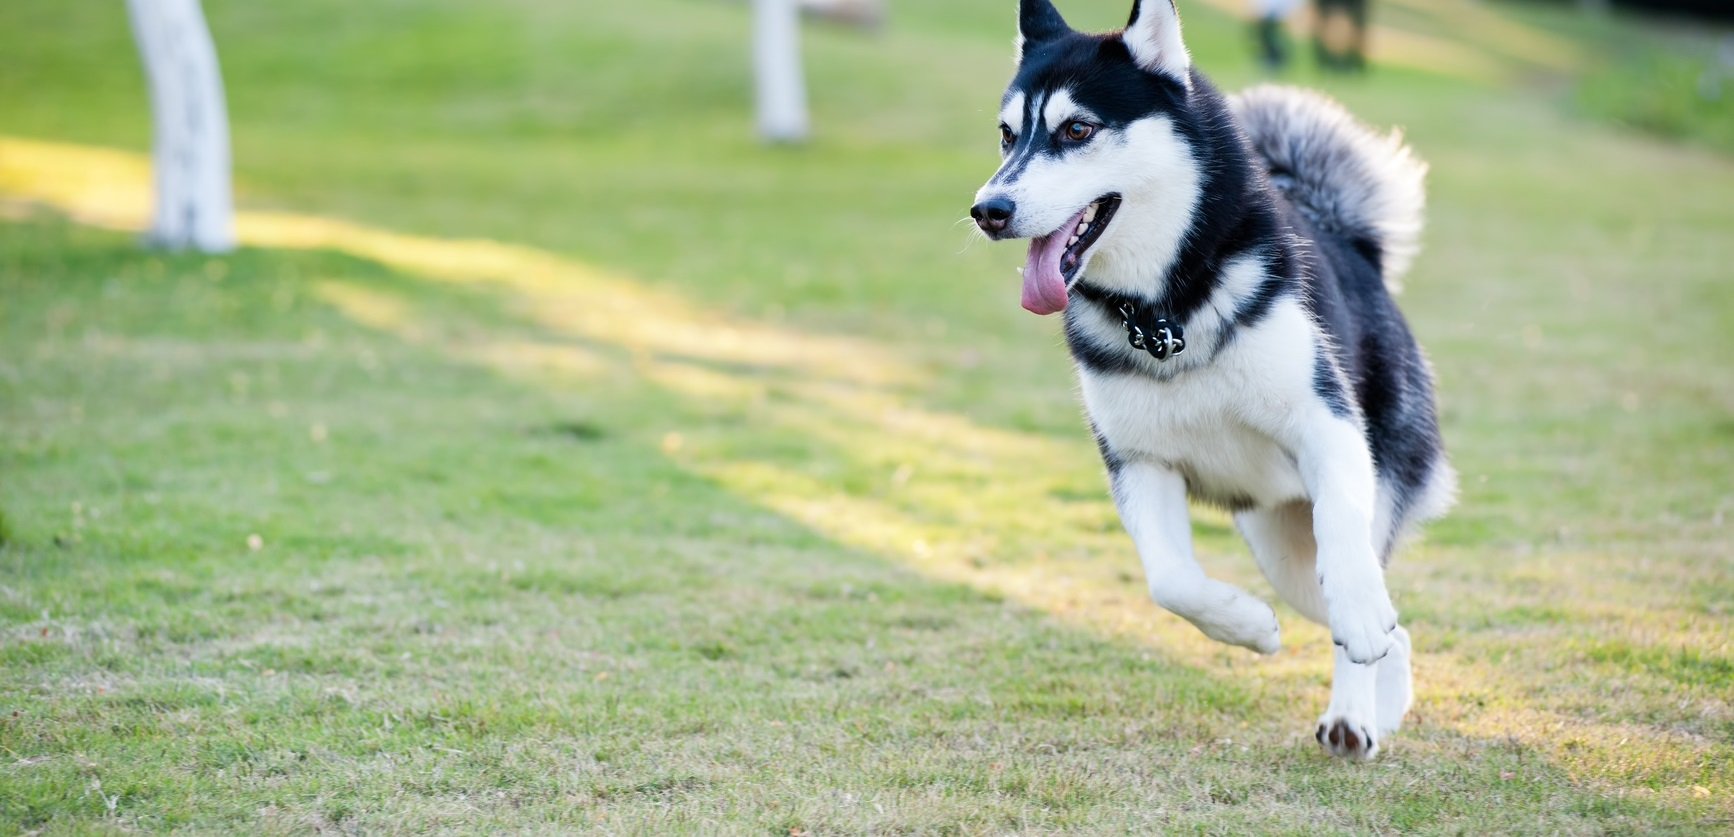 photodune-943742-alaskan-malamute-dog-running-m-wide